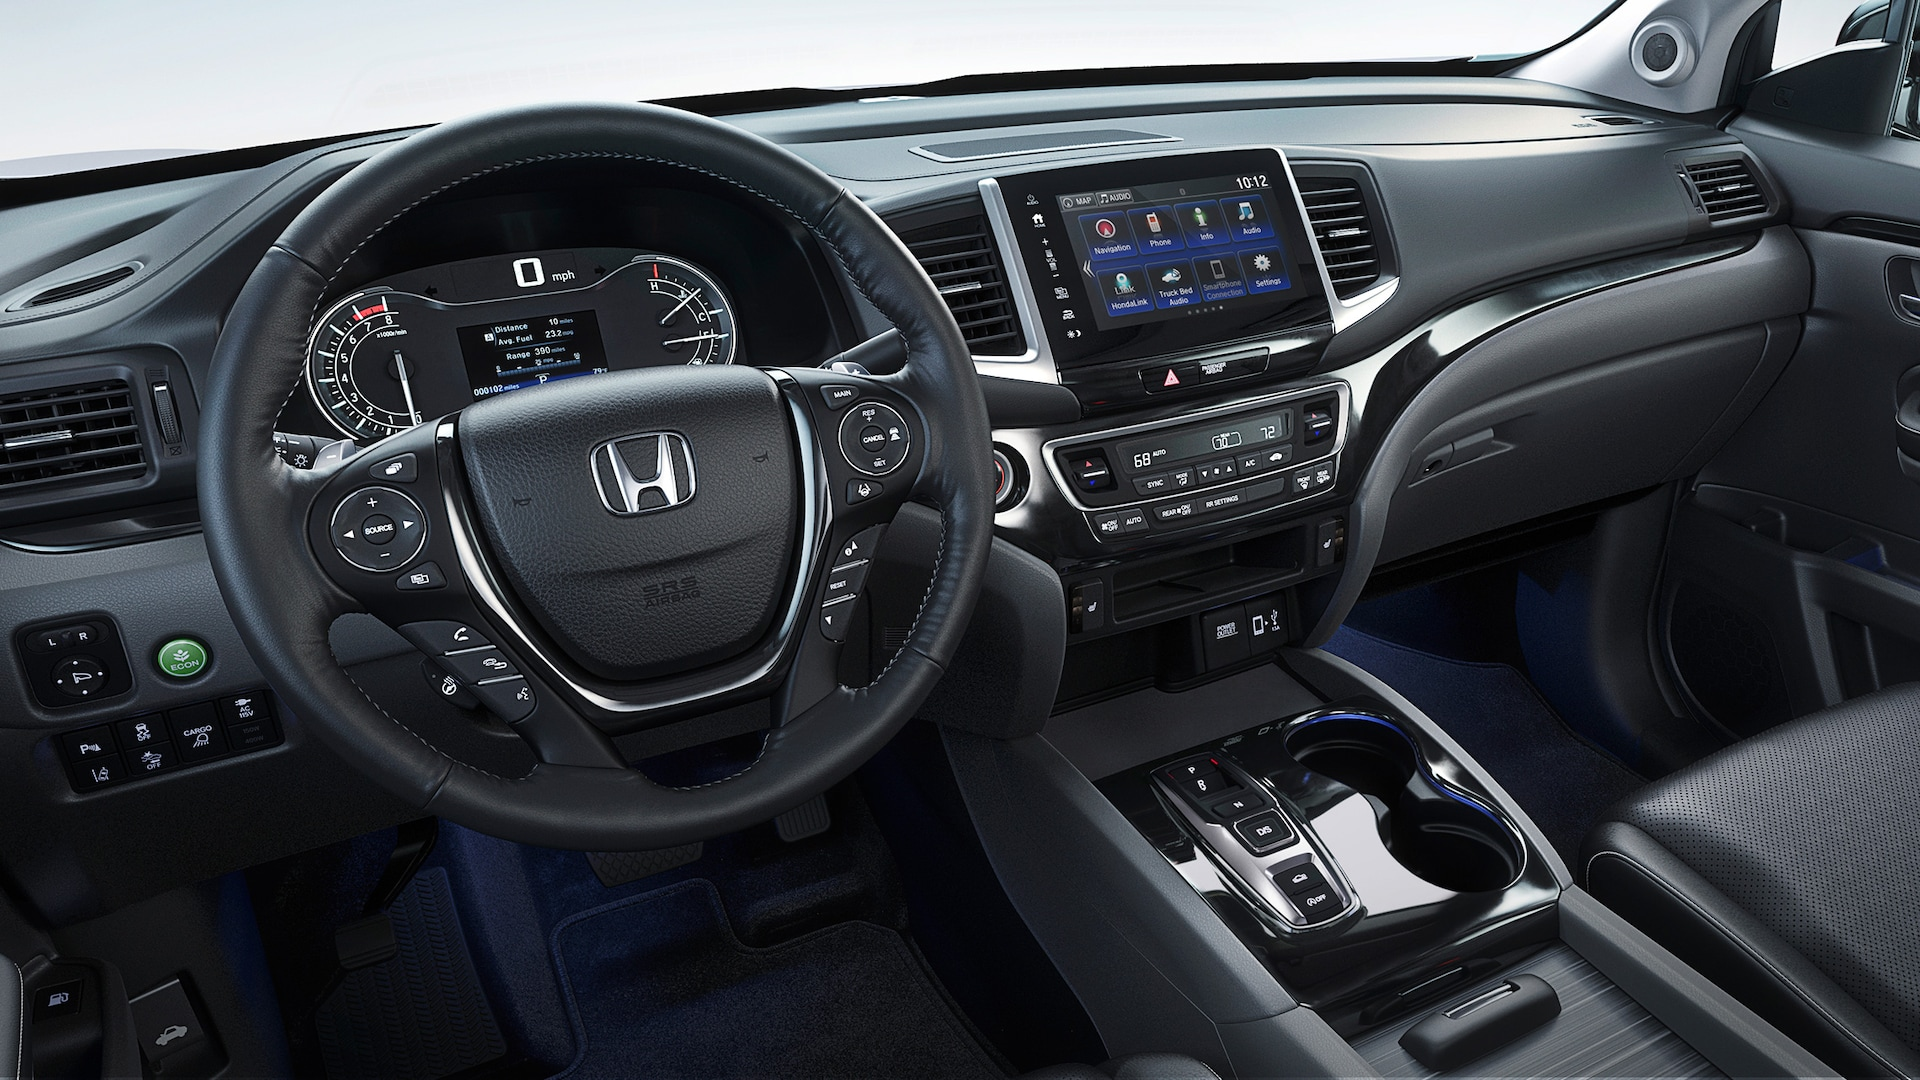 Interior driver's point of view of the steering wheel and instrument panel in the 2020 Honda Ridgeline RTL-E with Black Leather.